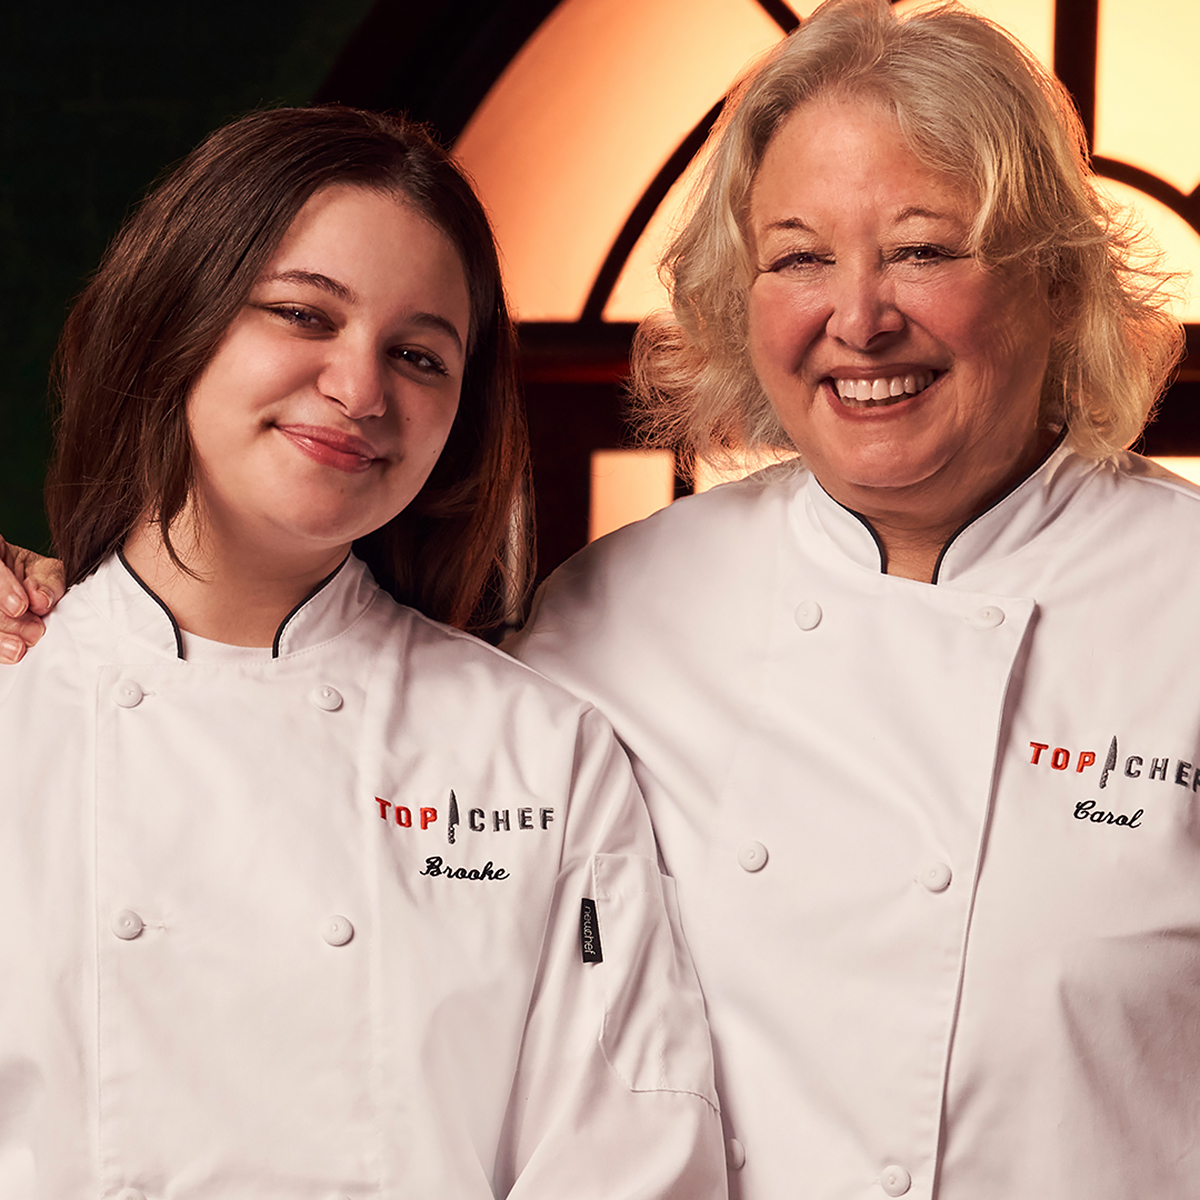 Top Chef Family Style contestants Brooke Nathanson and Carol Weiss